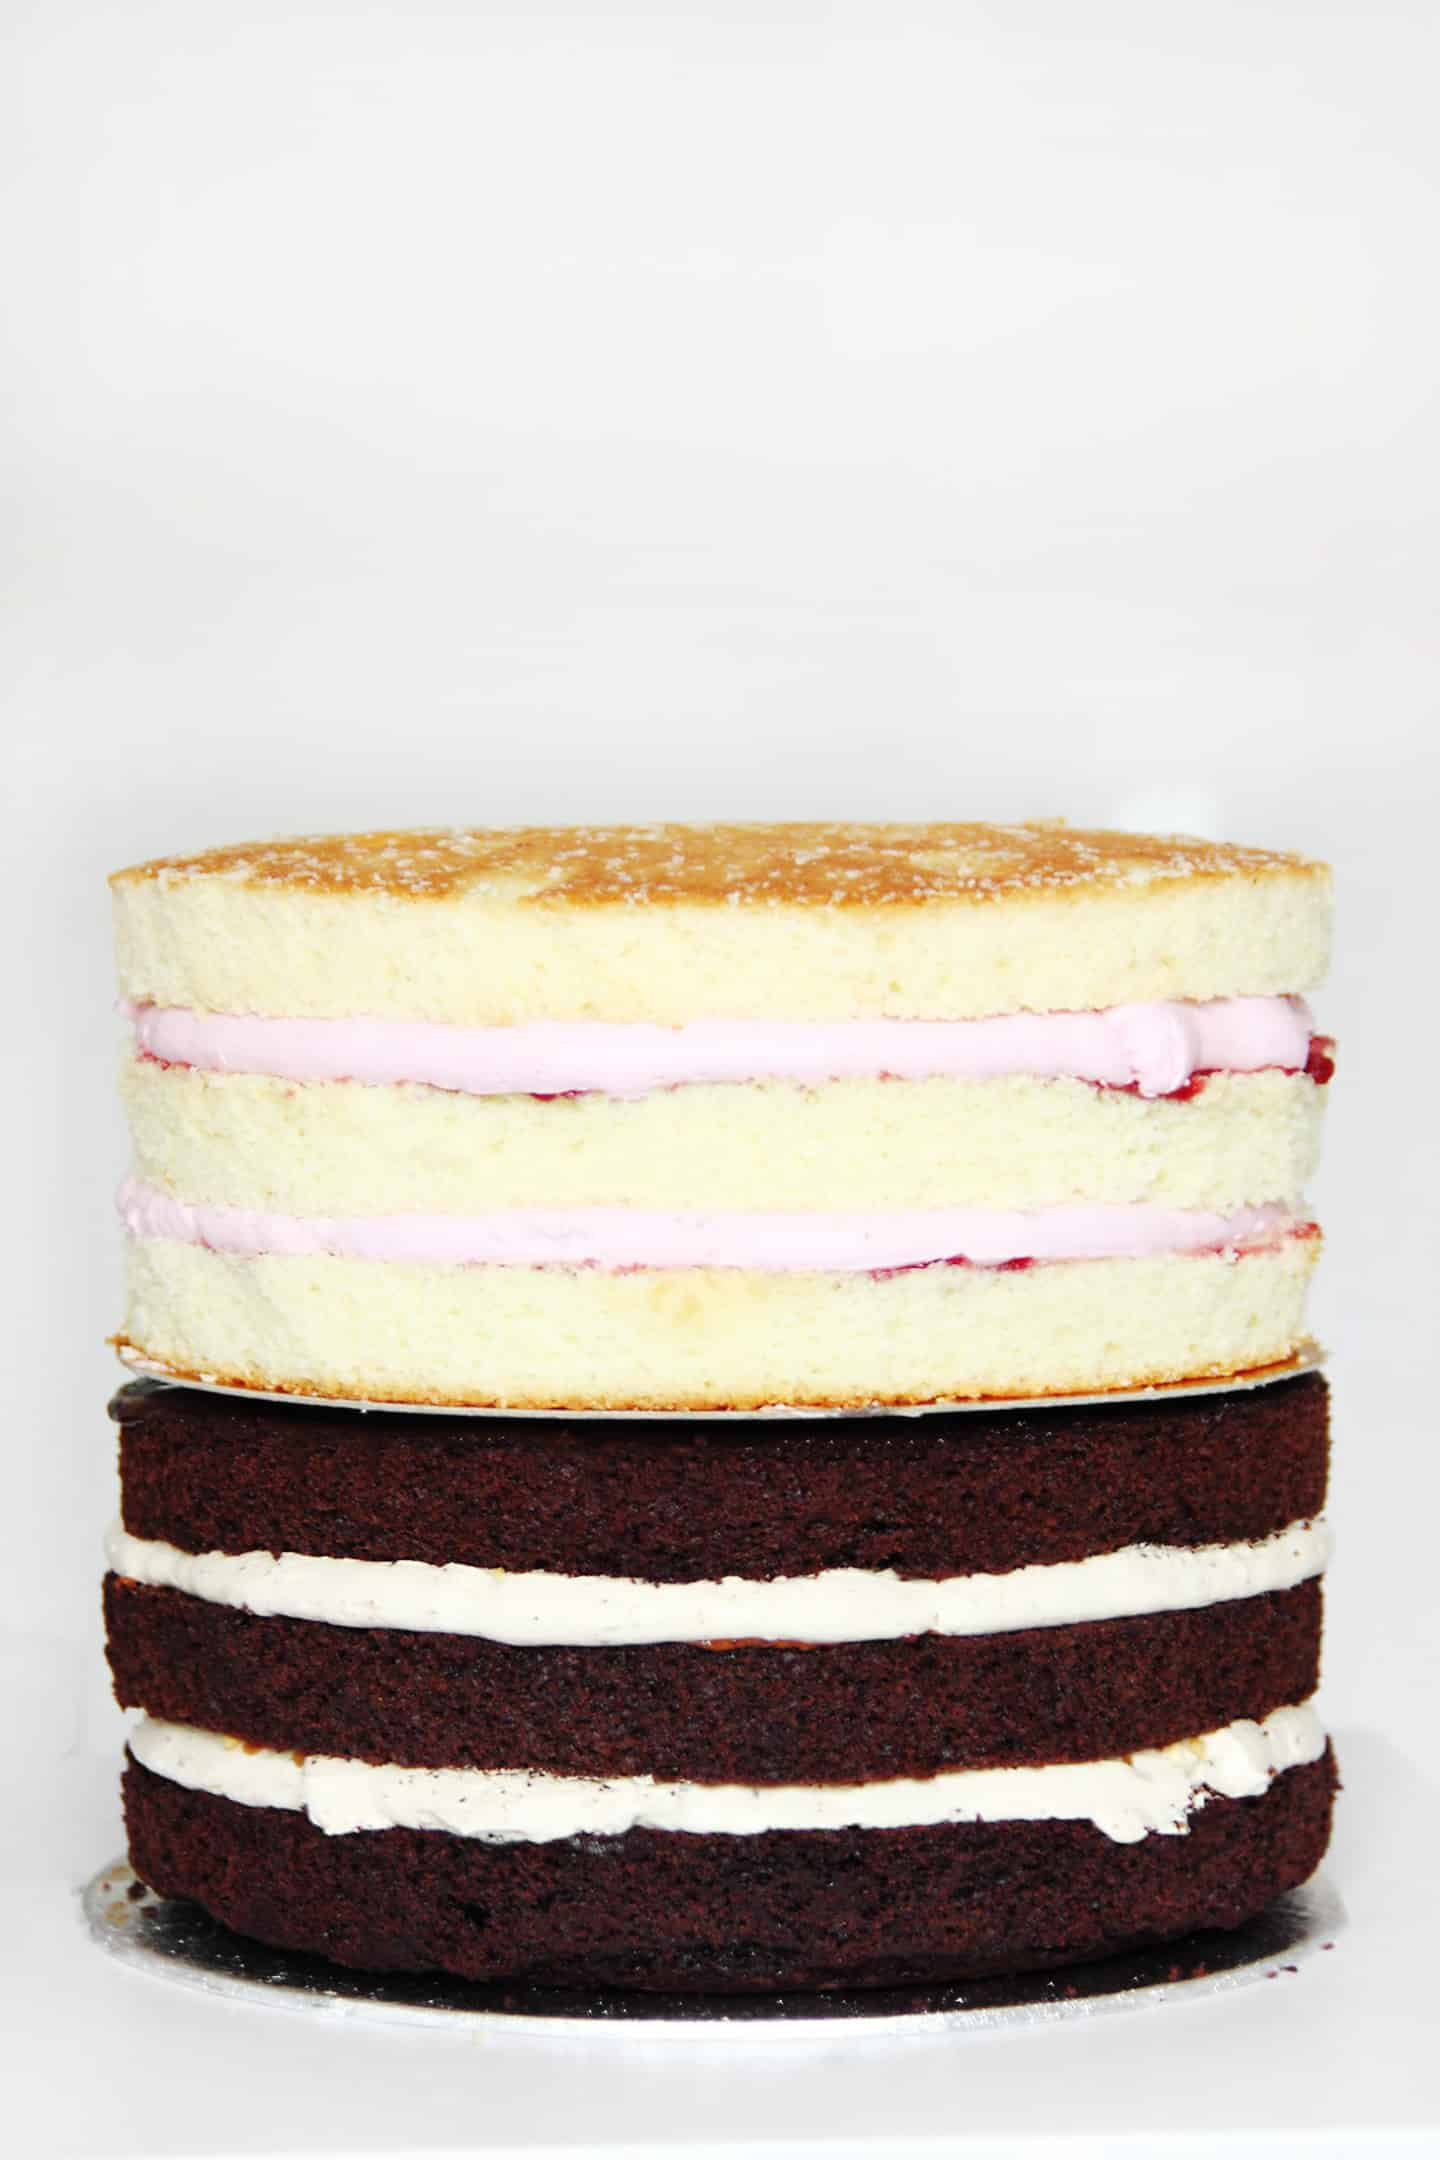 how to stack a layer cakes